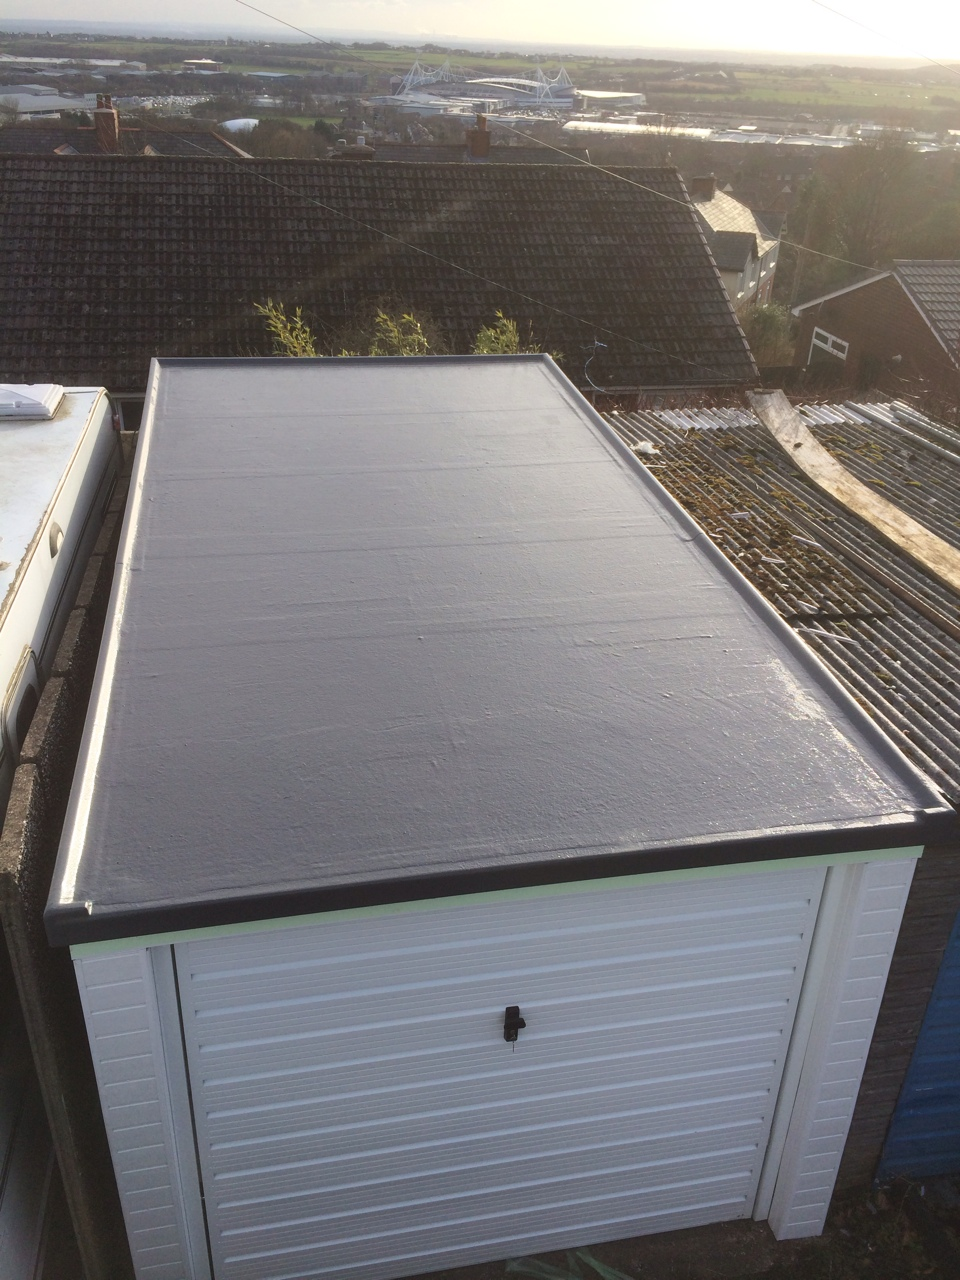 image shows grp roofing on a garage in sheffield